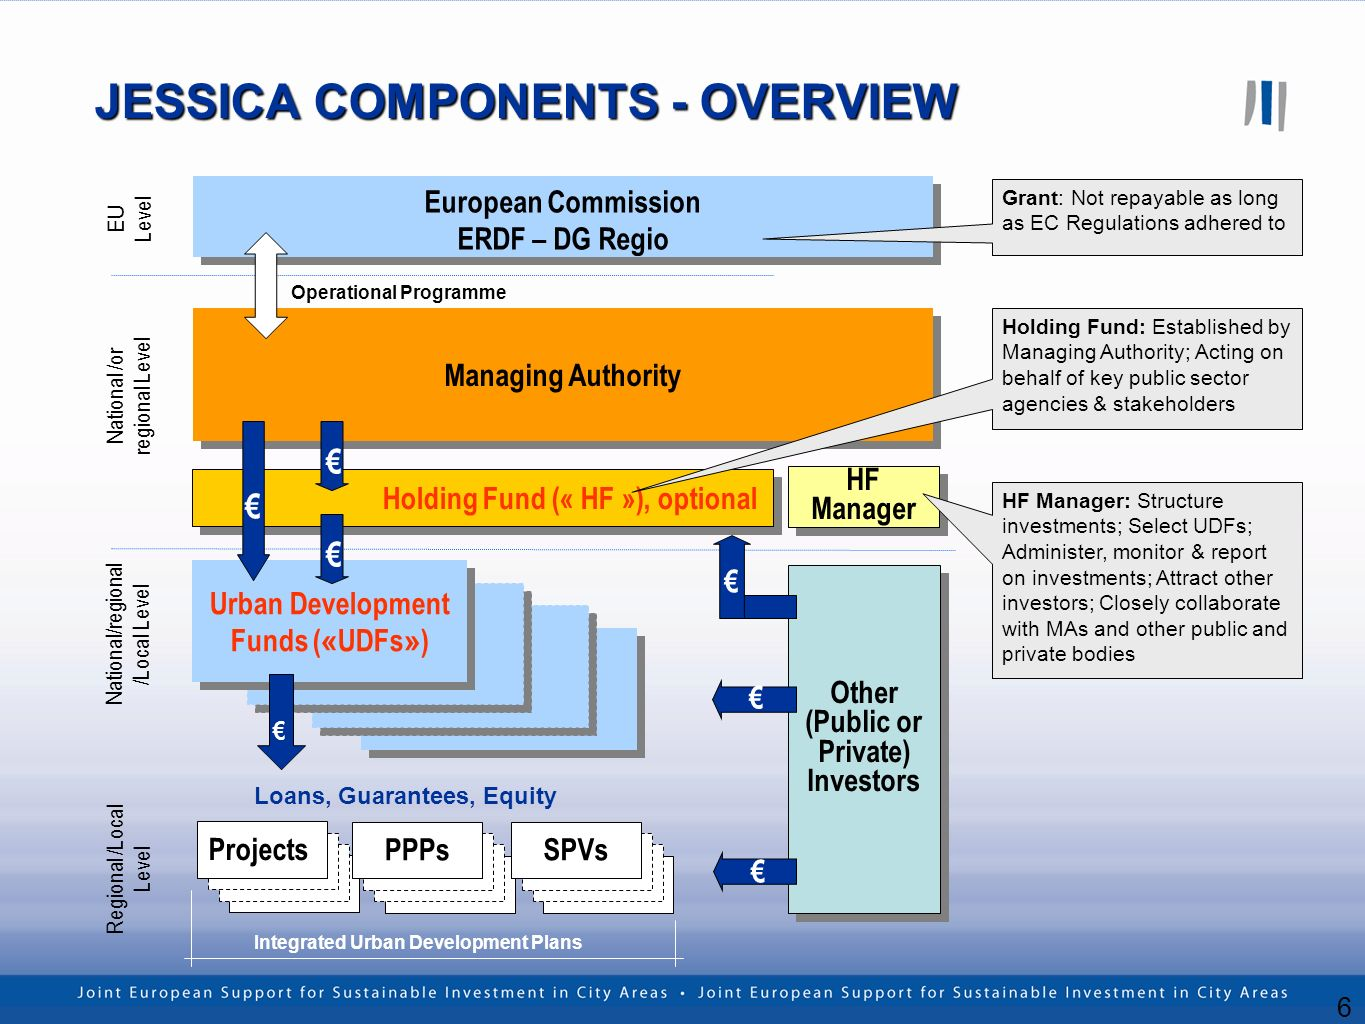 6 JESSICA COMPONENTS - OVERVIEW HF Manager European Commission ERDF – DG Regio European Commission ERDF – DG Regio Managing Authority EU Level National /or regional Level Holding Fund (« HF »), optional Urban Development Funds ( « UDFs » ) National/regional /Local Level Regional /Local Level Projects PPPs SPVs Loans, Guarantees, Equity Integrated Urban Development Plans Other (Public or Private) Investors Other (Public or Private) Investors Grant: Not repayable as long as EC Regulations adhered to Holding Fund: Established by Managing Authority; Acting on behalf of key public sector agencies & stakeholders HF Manager: Structure investments; Select UDFs; Administer, monitor & report on investments; Attract other investors; Closely collaborate with MAs and other public and private bodies Operational Programme